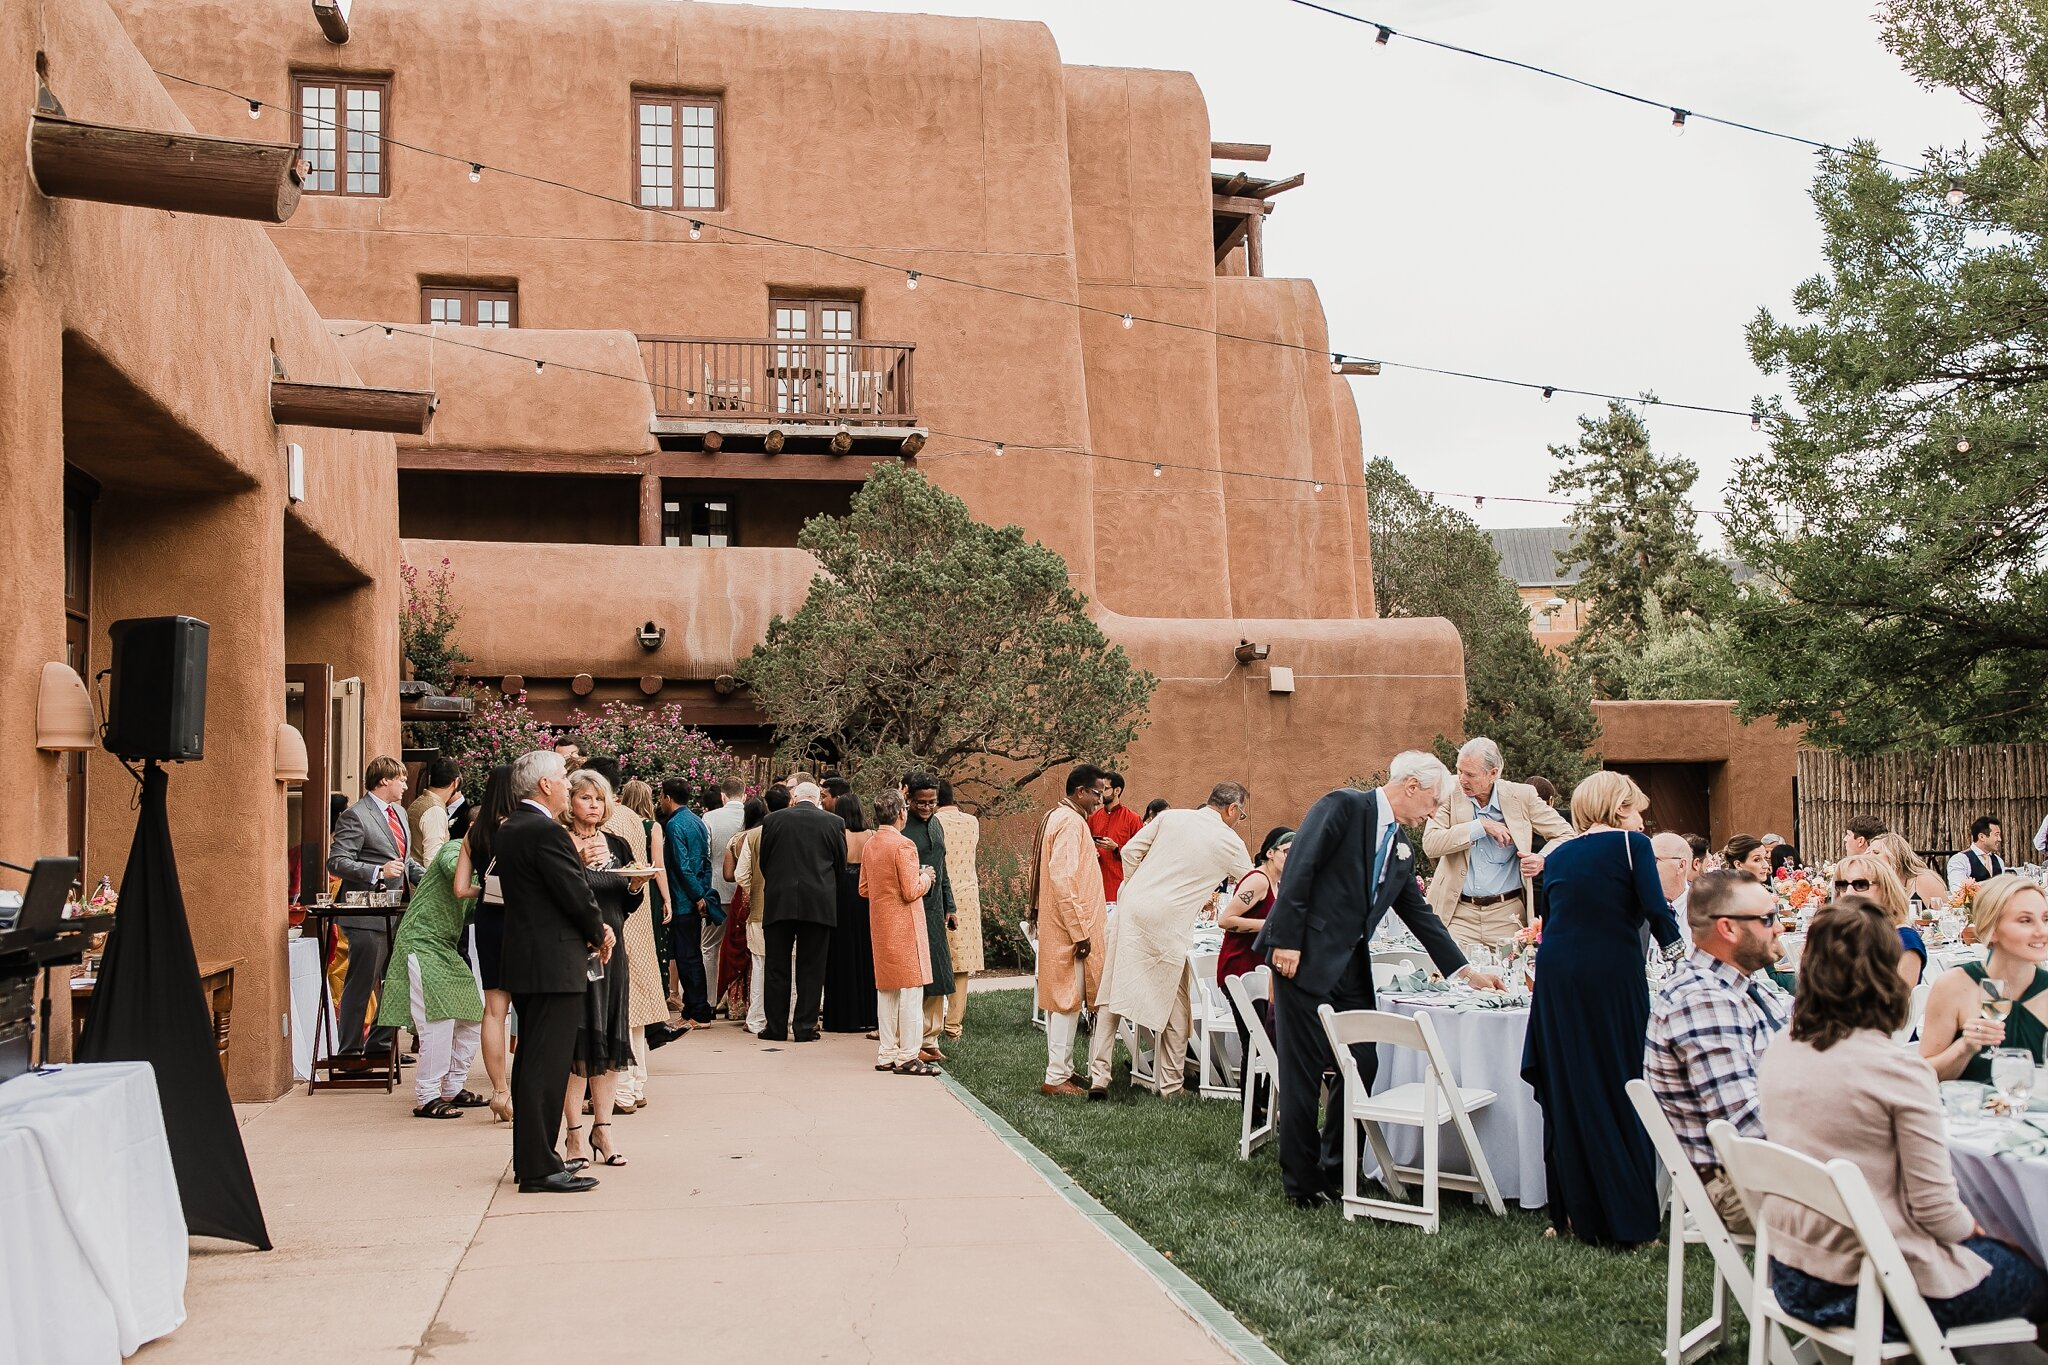 Alicia+lucia+photography+-+albuquerque+wedding+photographer+-+santa+fe+wedding+photography+-+new+mexico+wedding+photographer+-+new+mexico+wedding+-+hindu+wedding+-+catholic+wedding+-+multicultural+wedding+-+santa+fe+wedding_0114.jpg